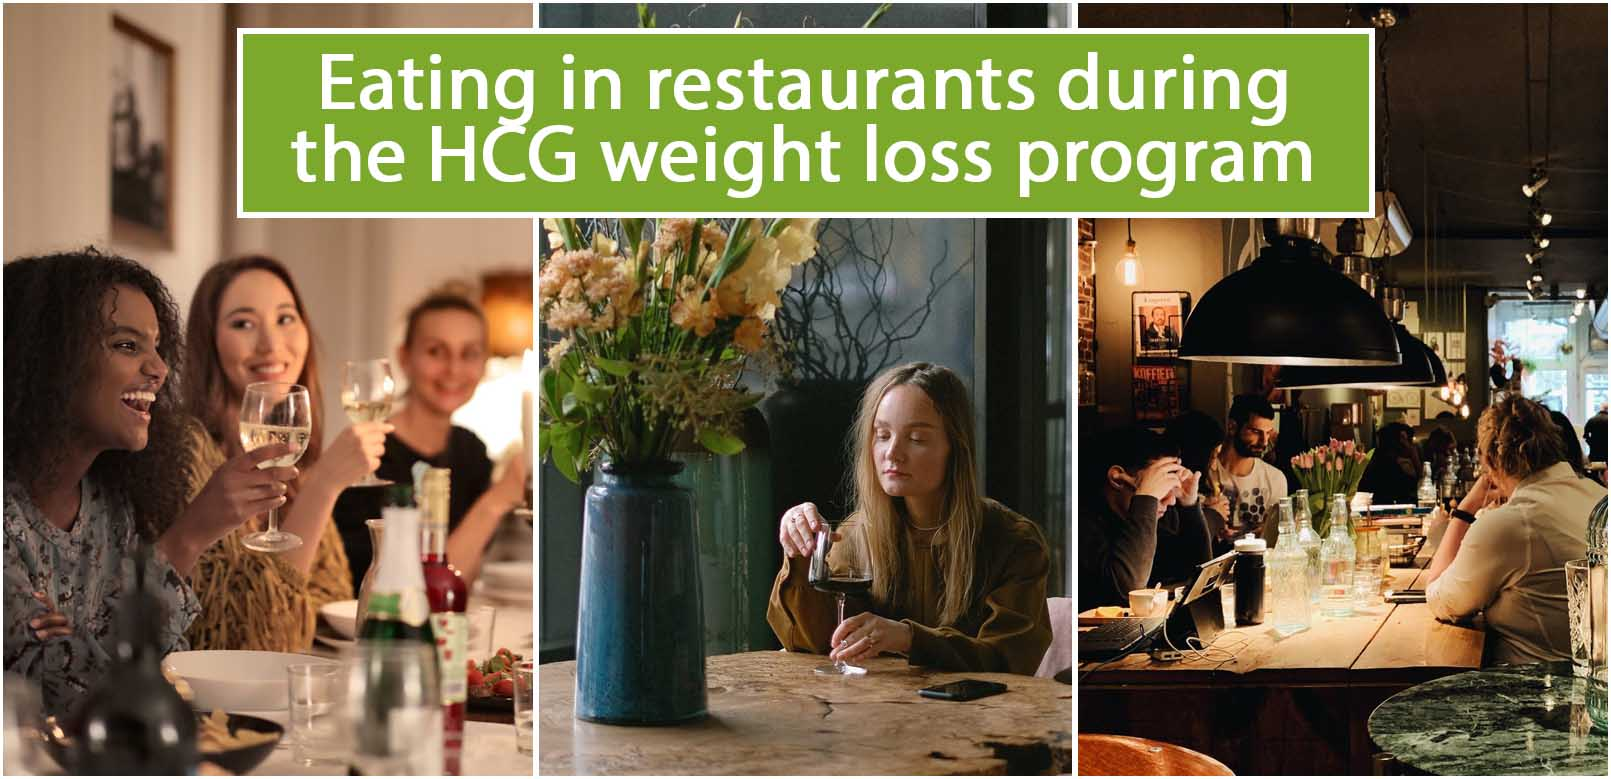 Eating in restaurants during the HCG weight loss program